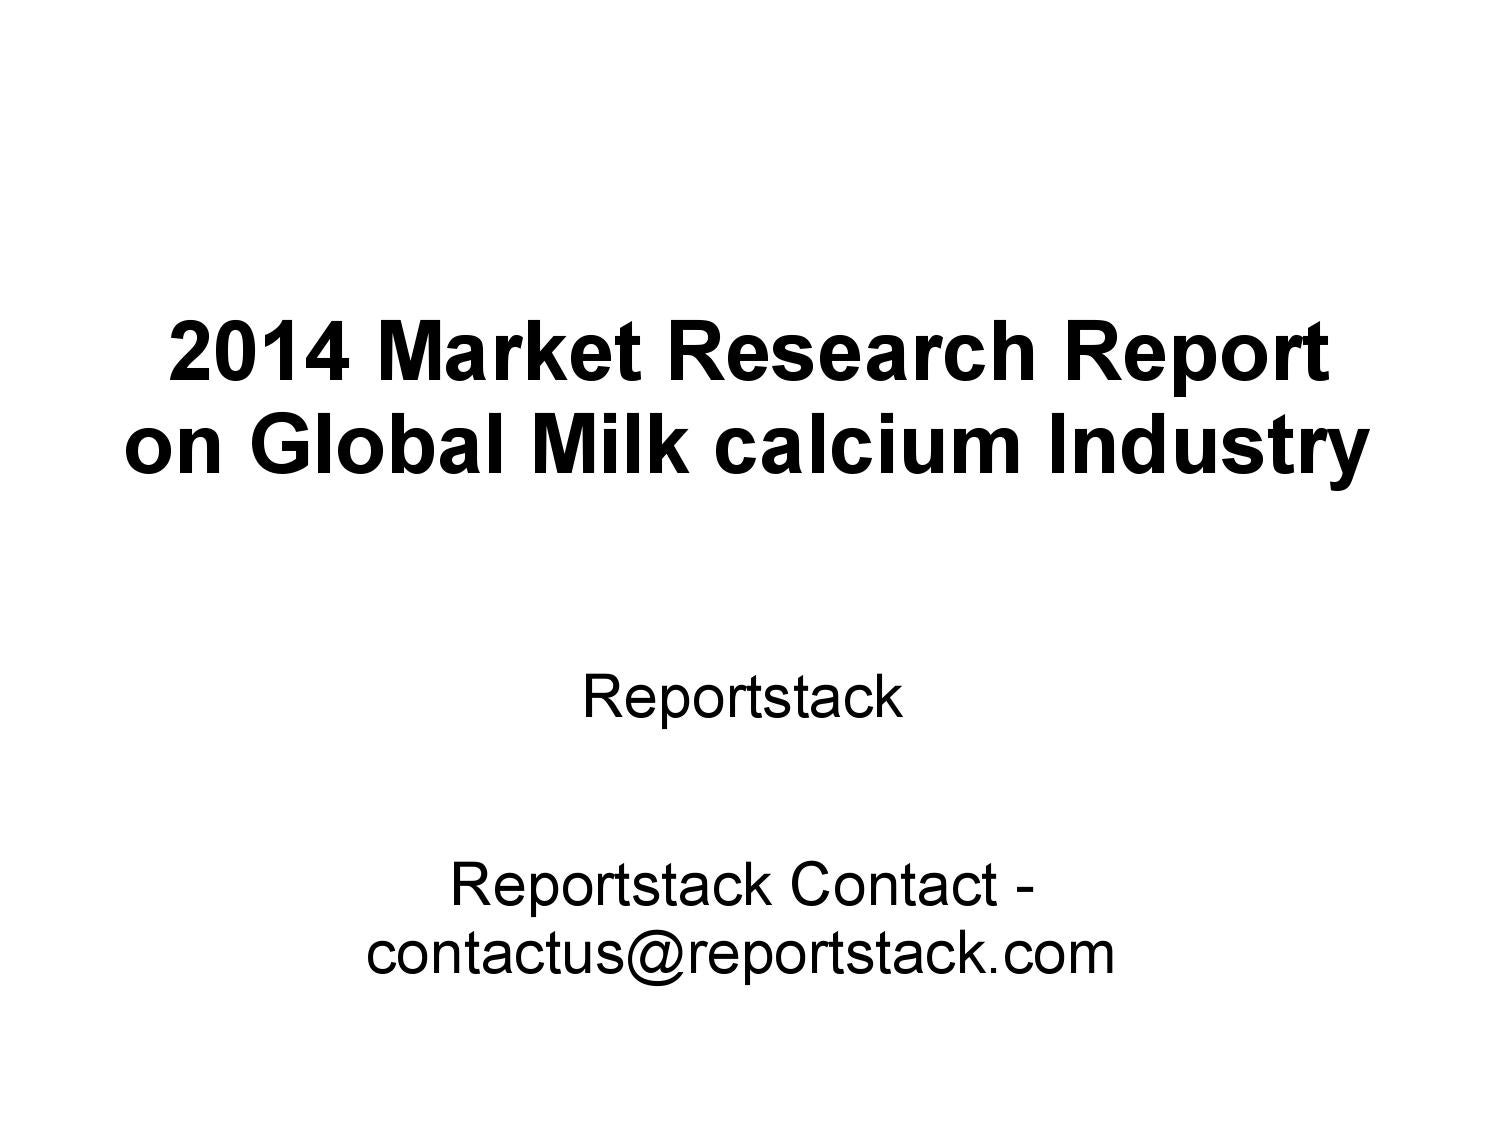 2014 market research report on global